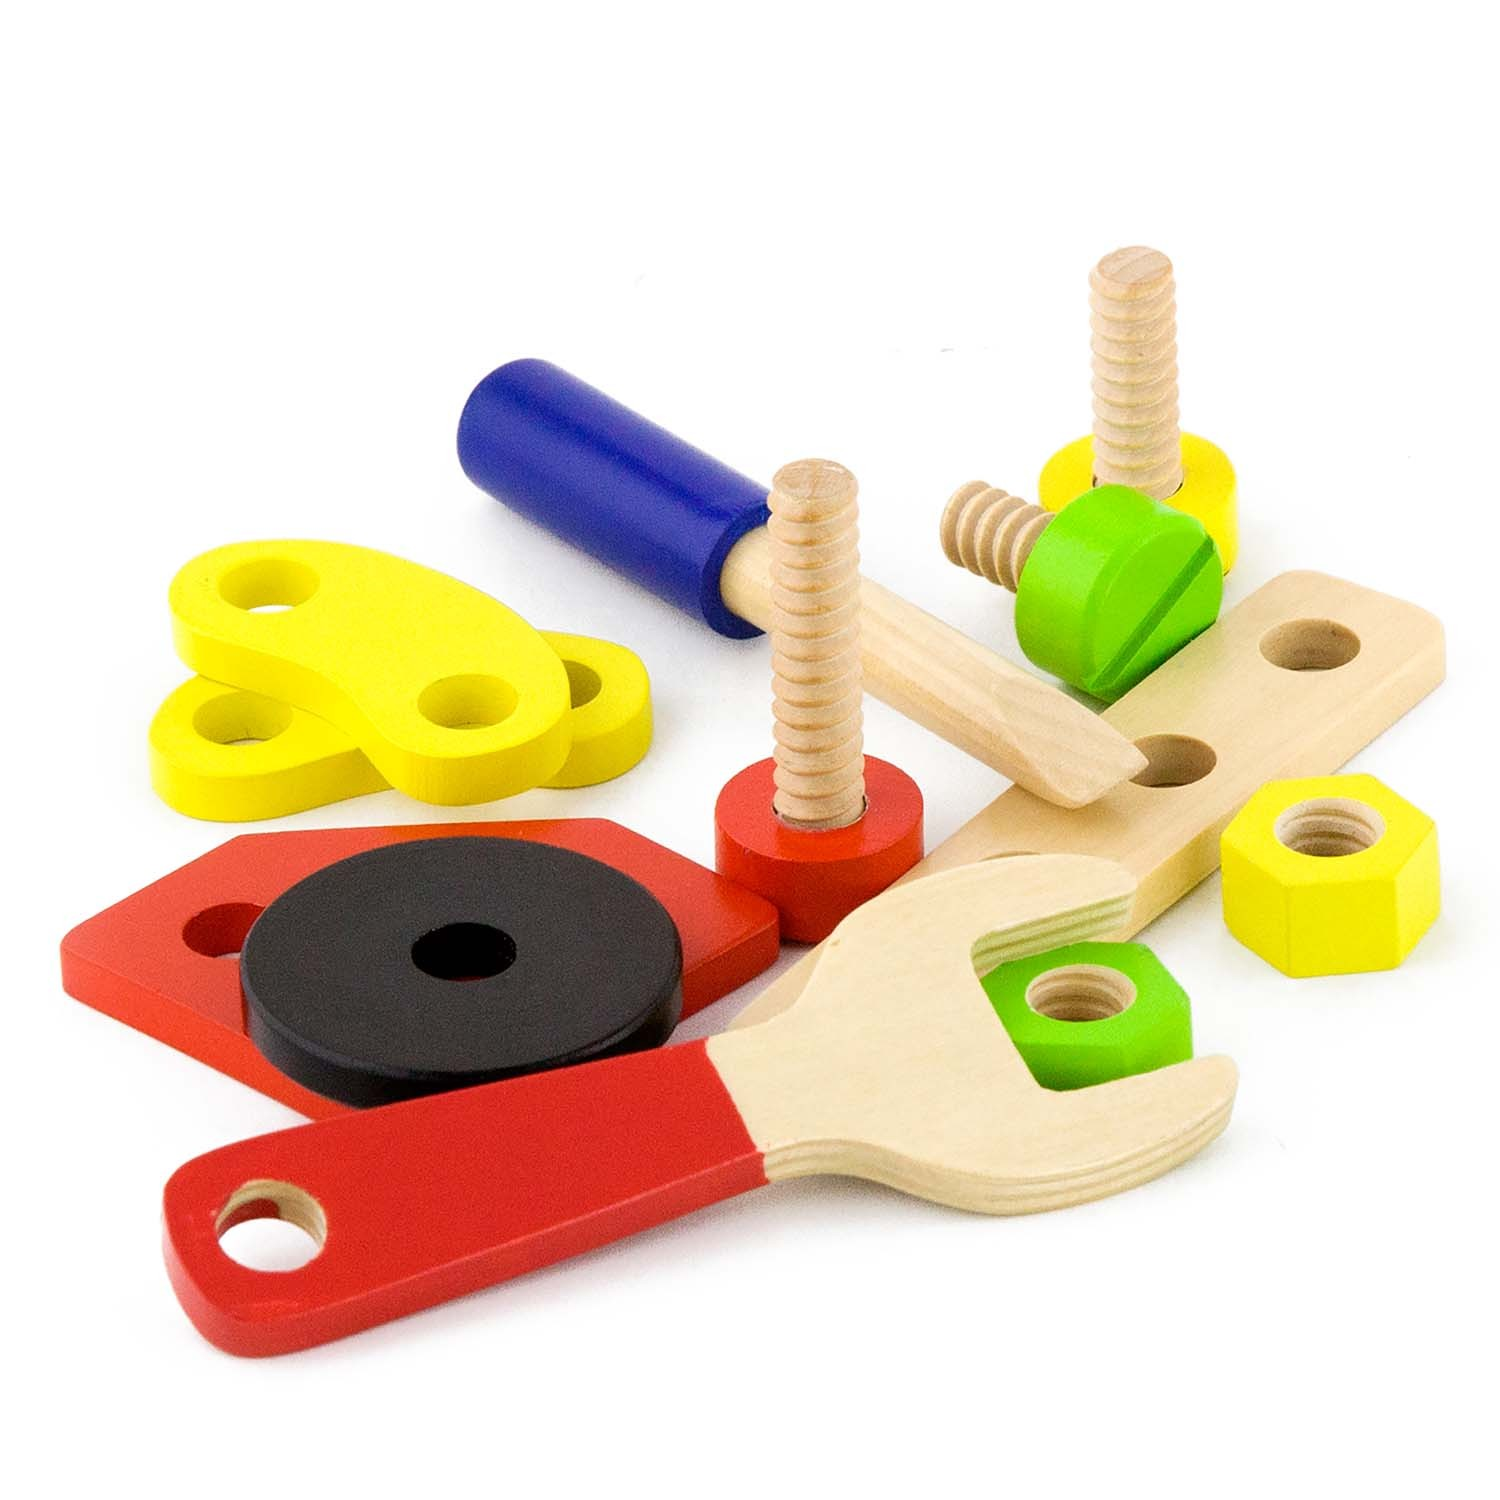 Toys That Are 48 20 : Viga toys construction block set pieces new